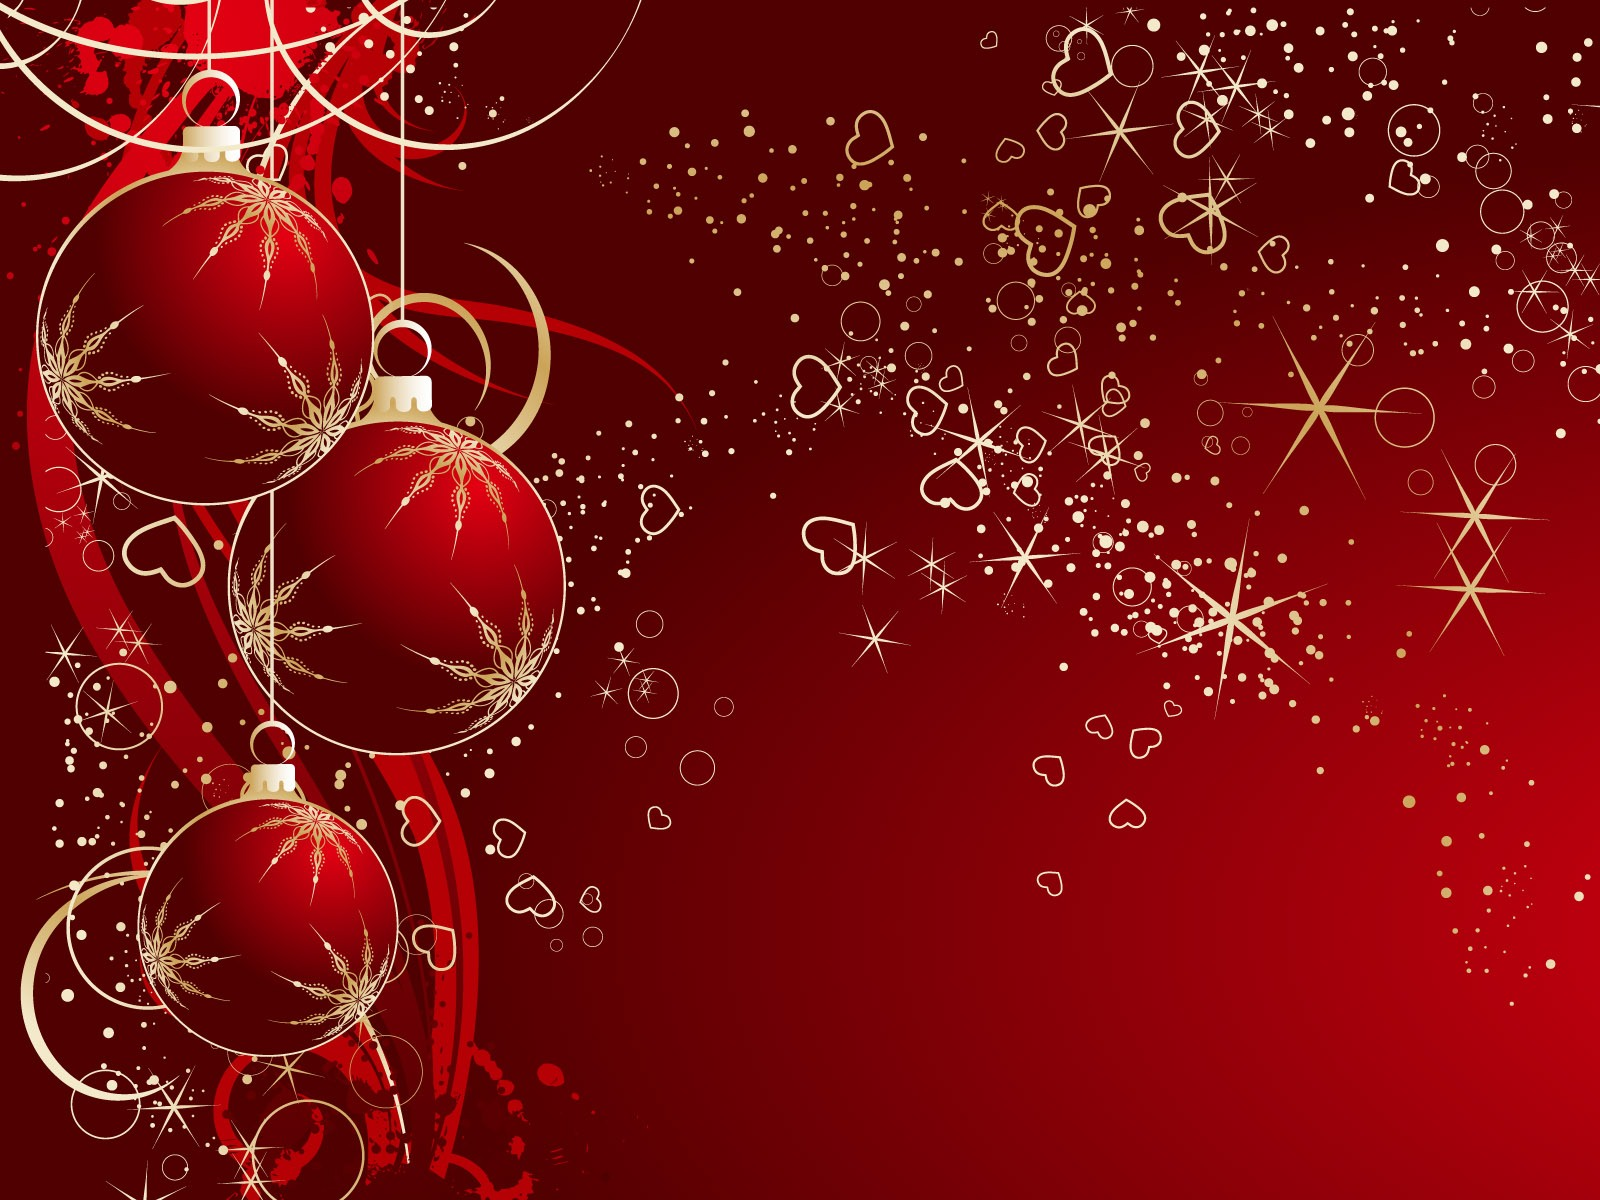 Christmas Wallpapers December 2011 1600x1200